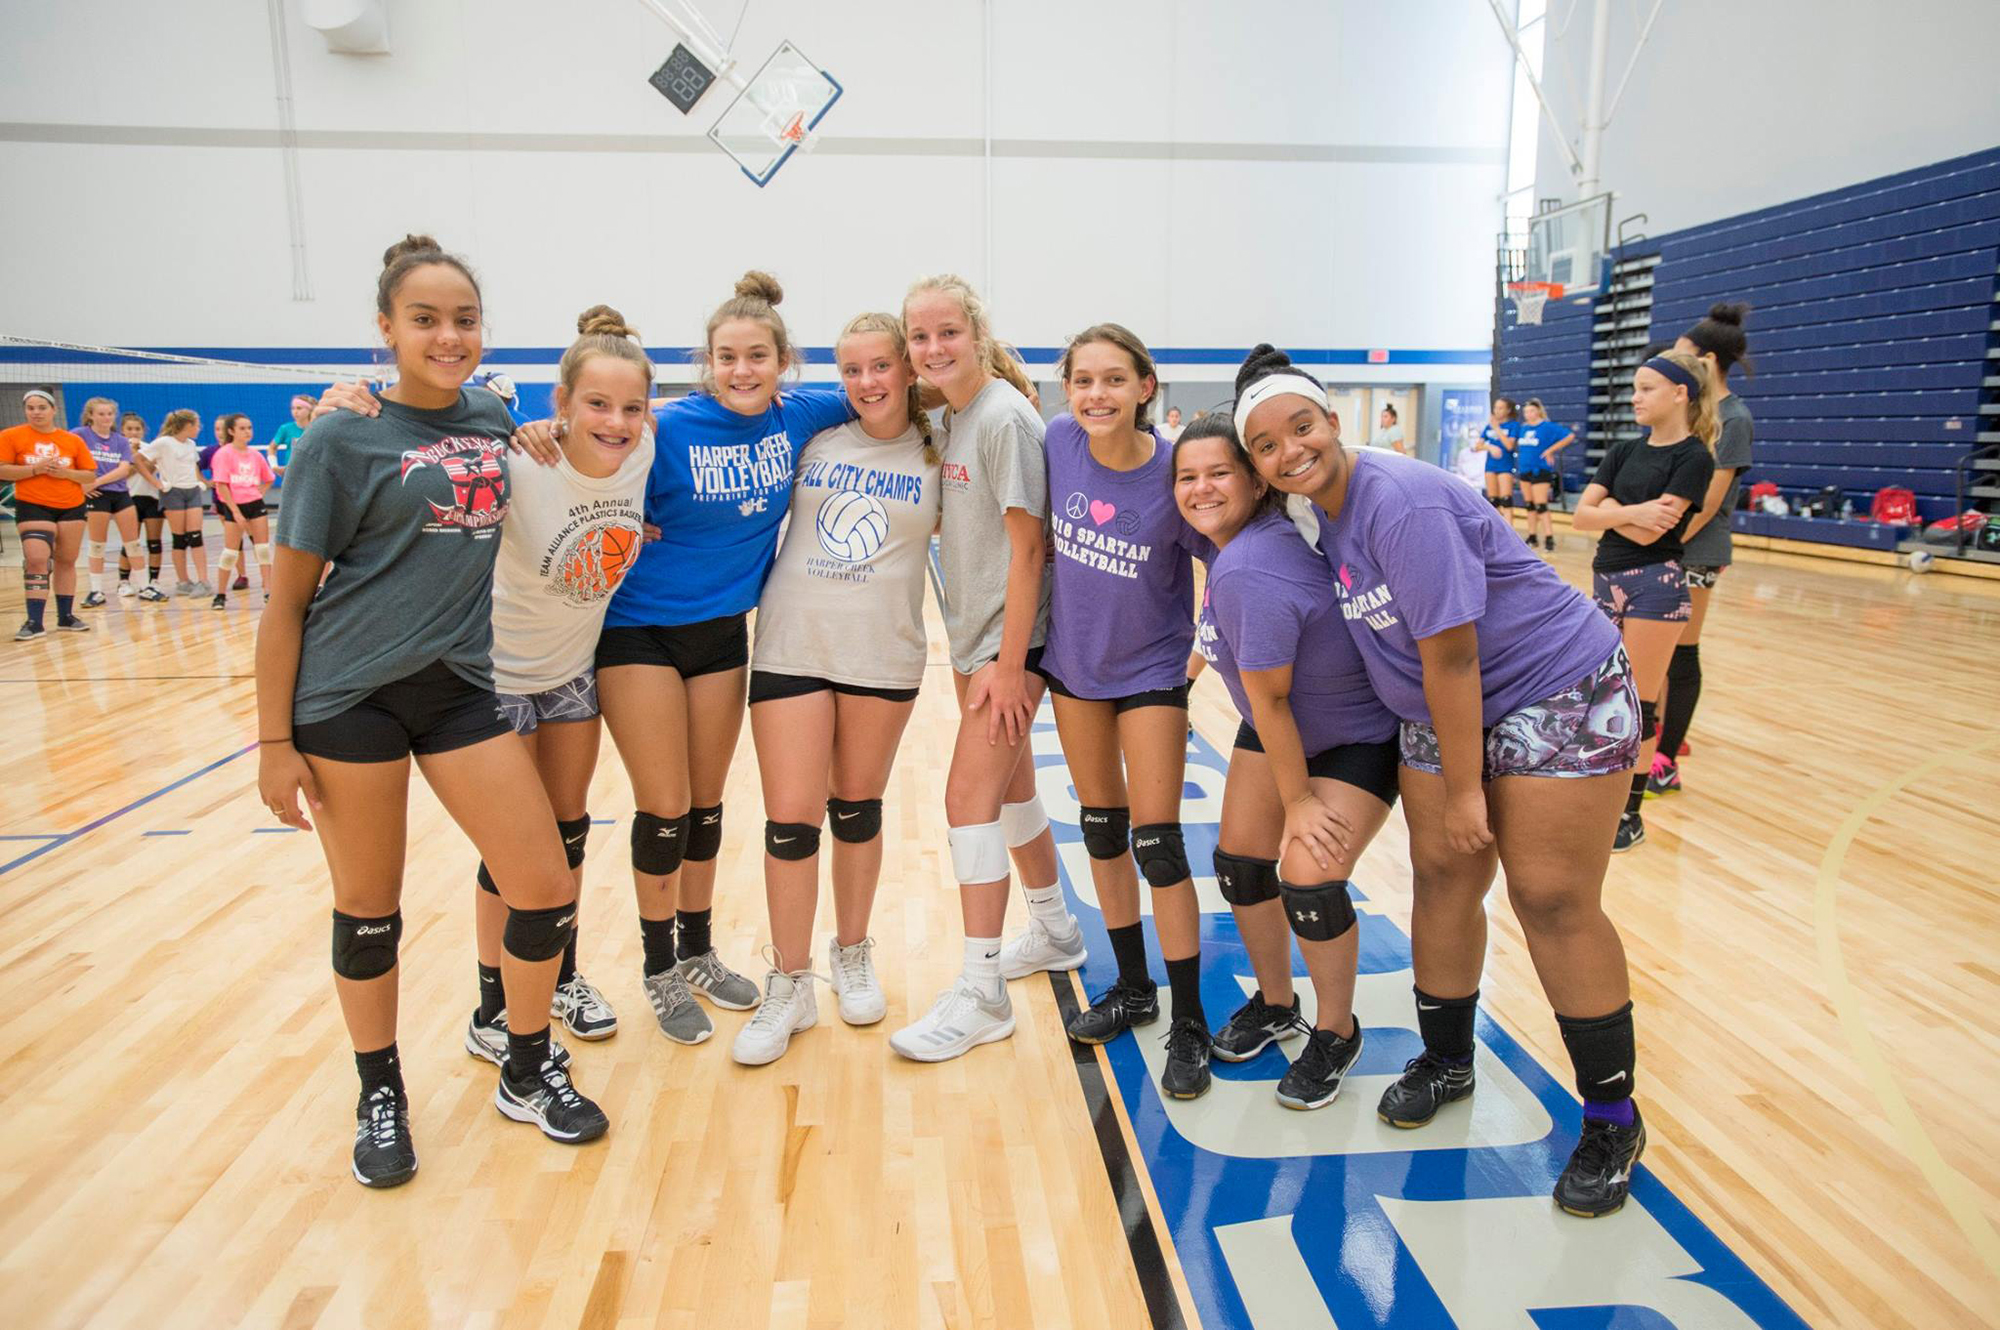 Youth volleyball camp participants pose for a group photo in the Miller Gym.